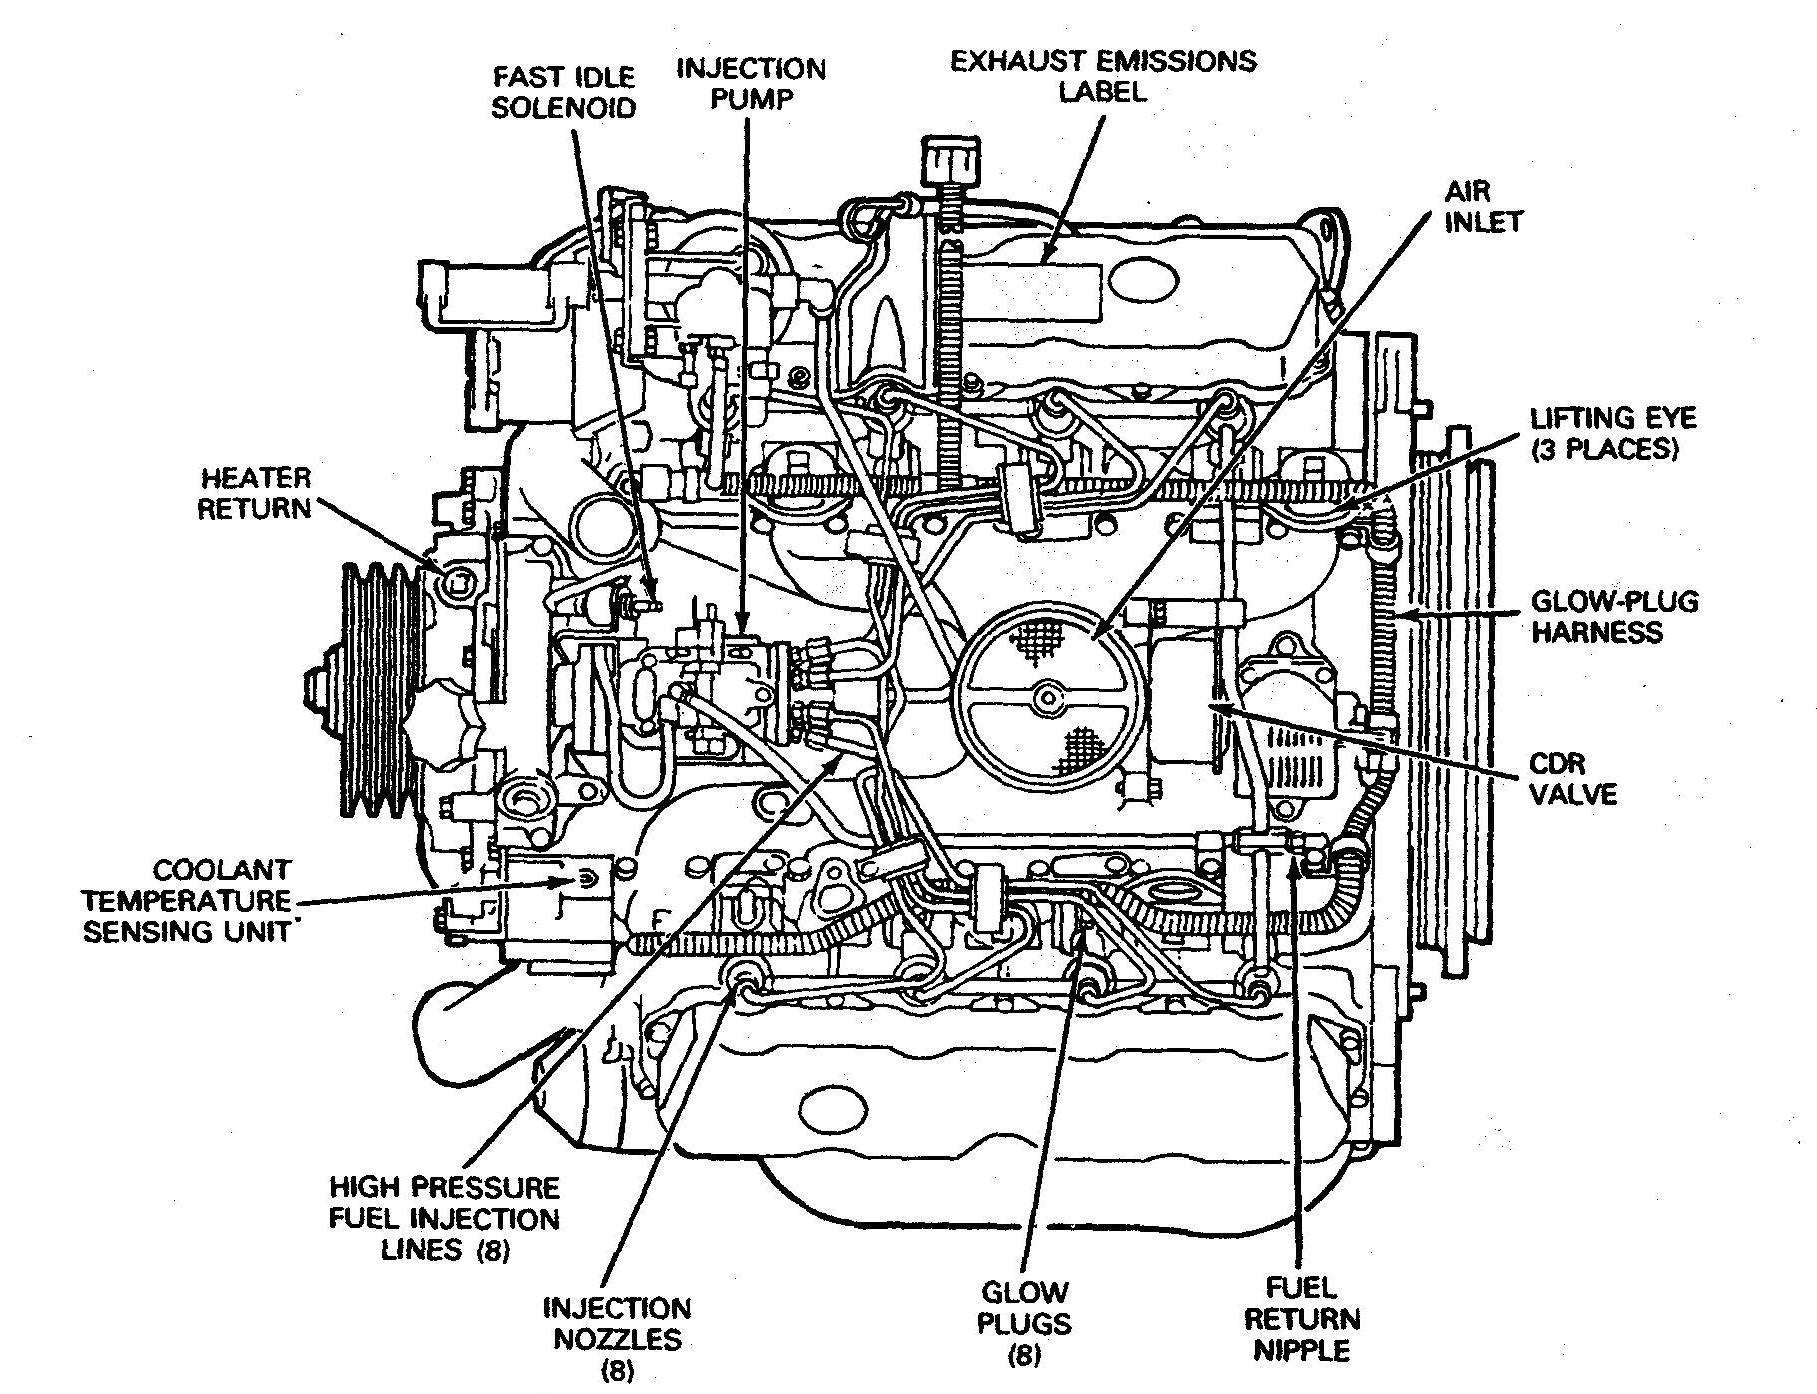 Ford 5 4 Engine Diagram 2 ford V6 3 7 Engine Diagram ford Wiring Diagrams  Instructions